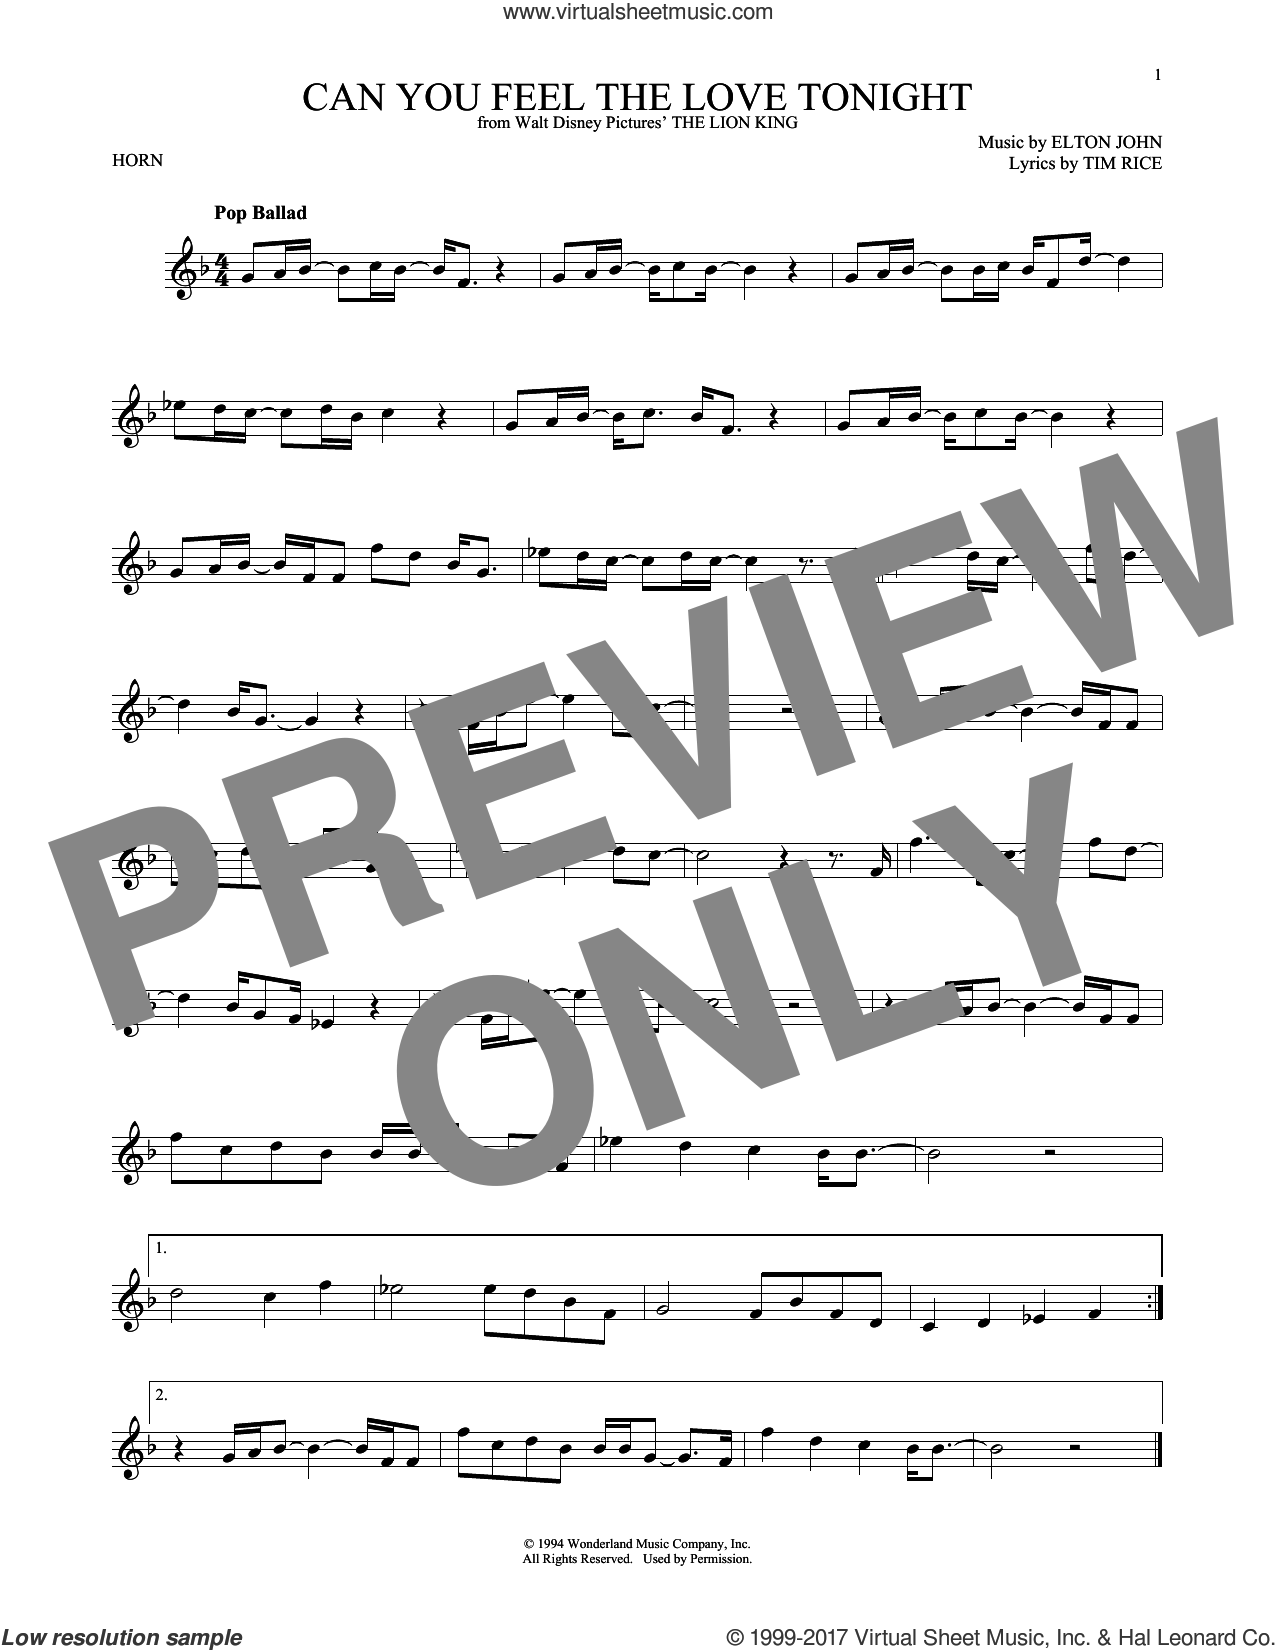 Can You Feel The Love Tonight sheet music for horn solo by Elton John and Tim Rice, intermediate skill level